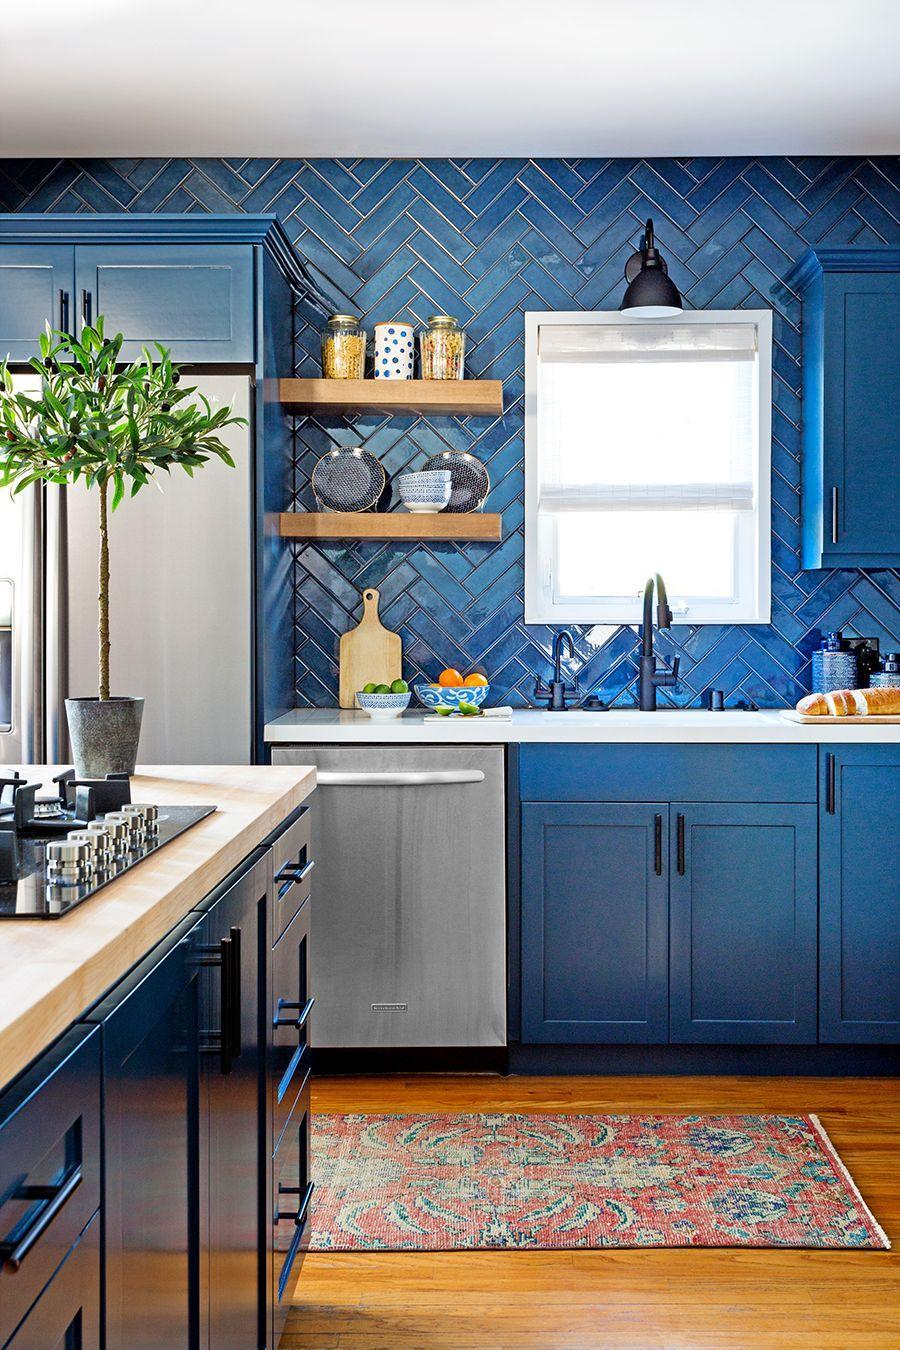 "<p>For this Los Angeles kitchen, <a href=""https://www.jennfeldmandesigns.com/"" rel=""nofollow noopener"" target=""_blank"" data-ylk=""slk:Jenn Feldman Designs"" class=""link rapid-noclick-resp"">Jenn Feldman Designs</a> chose a tonal grout to blend in with the navy tile, which is set in a refreshingly unexpected chevron pattern. It feels unexpected and interesting but fits in well since it matches the lower cabinets.</p>"